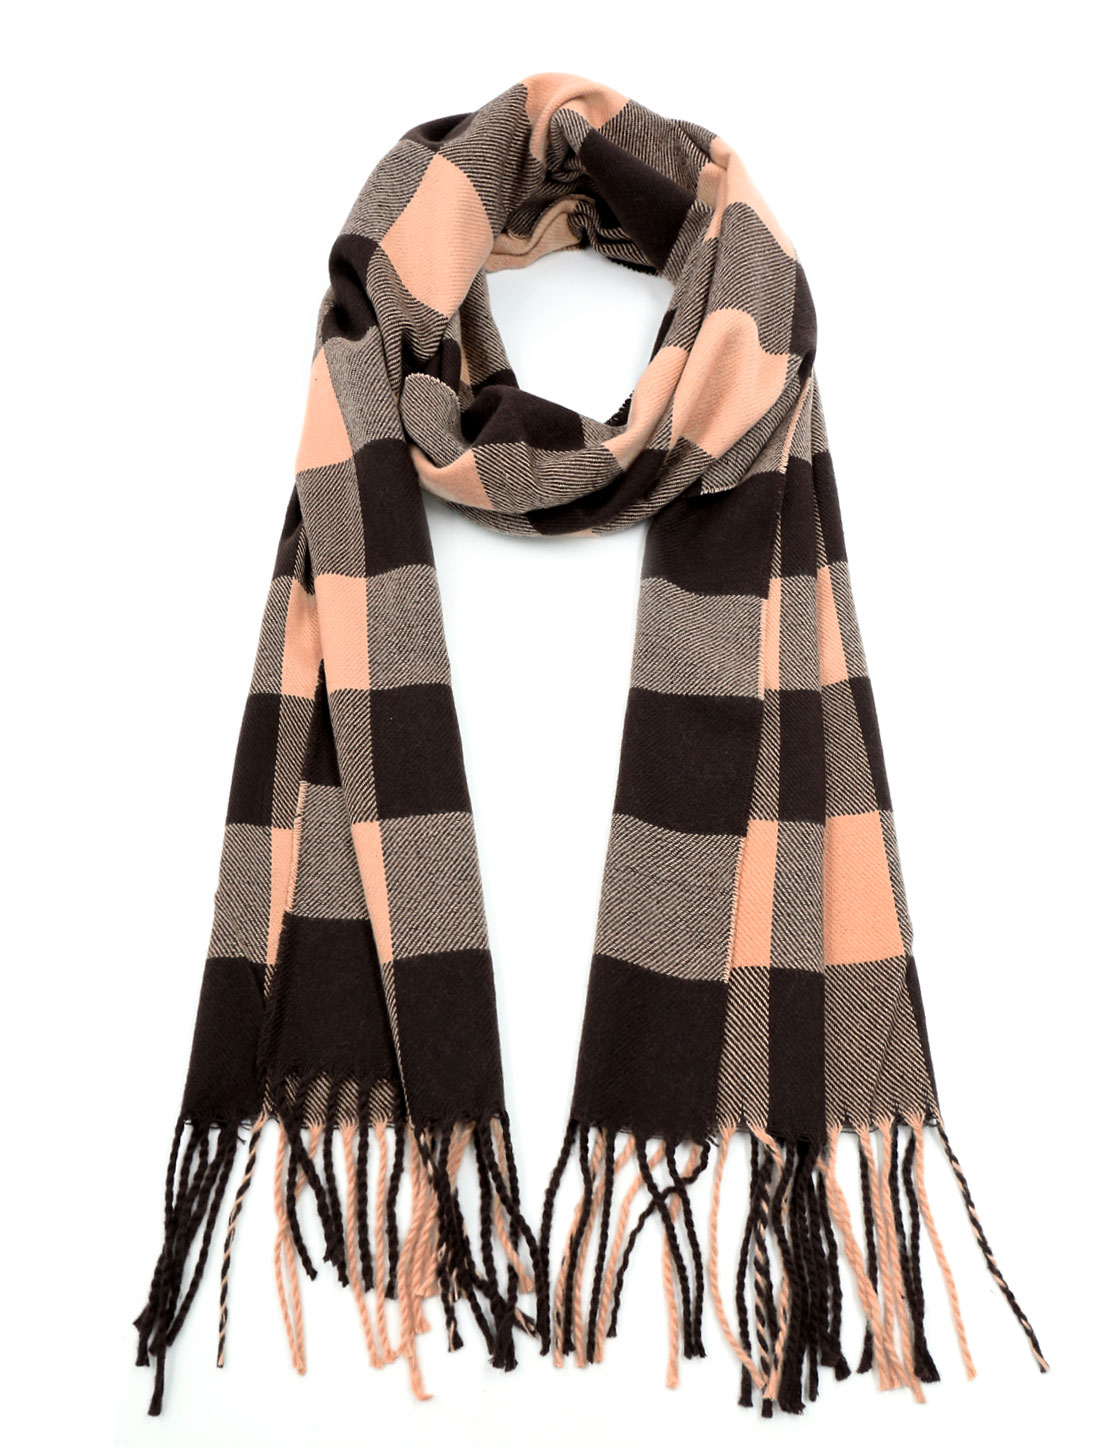 Men Plaids Rectangle Design Tassles Trim Long Scarf Brown Beige